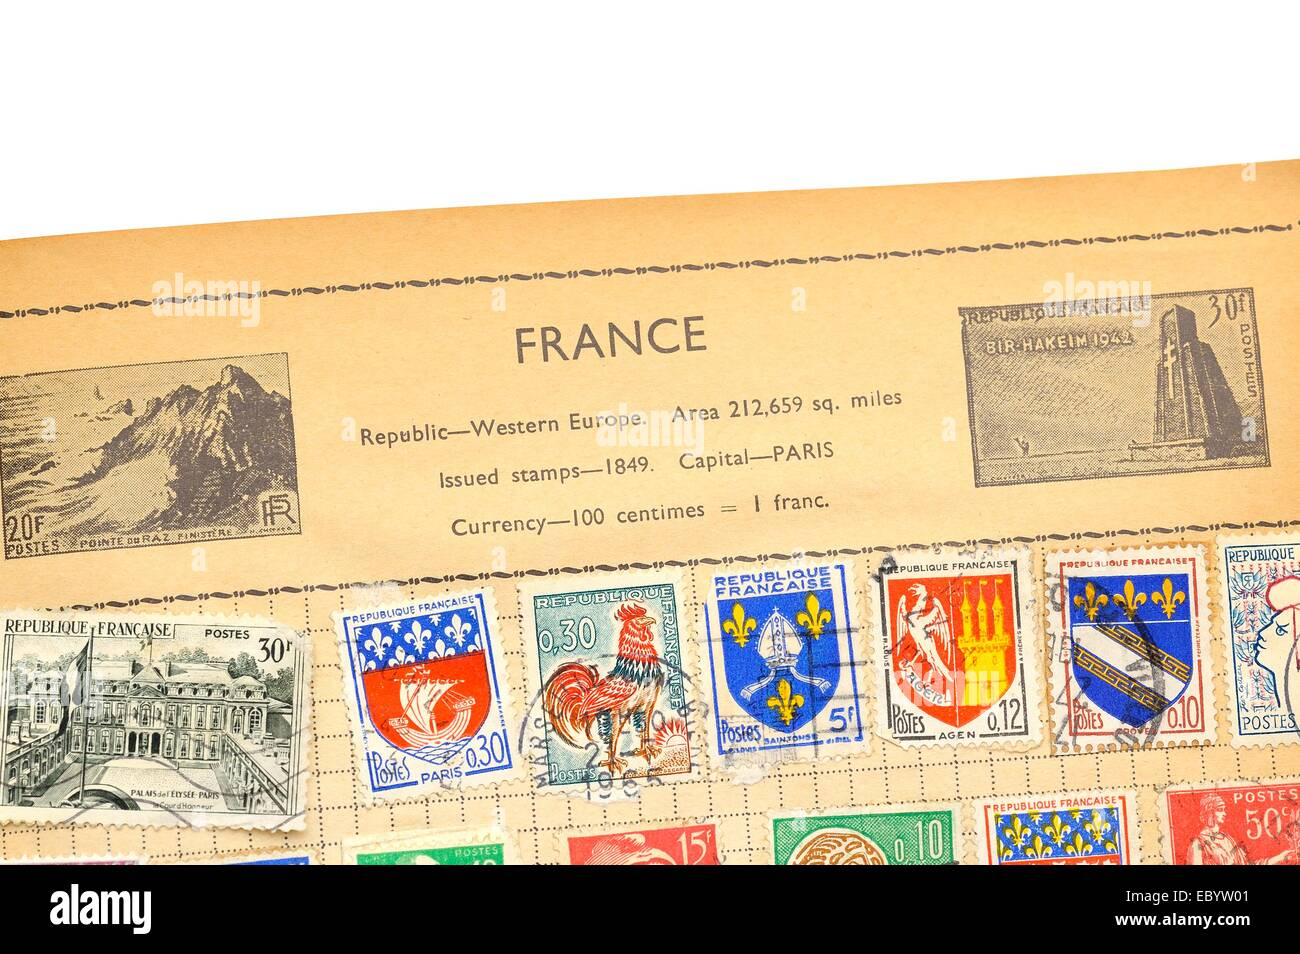 An old fully illustrated stamp album with stamps from France Stock Photo